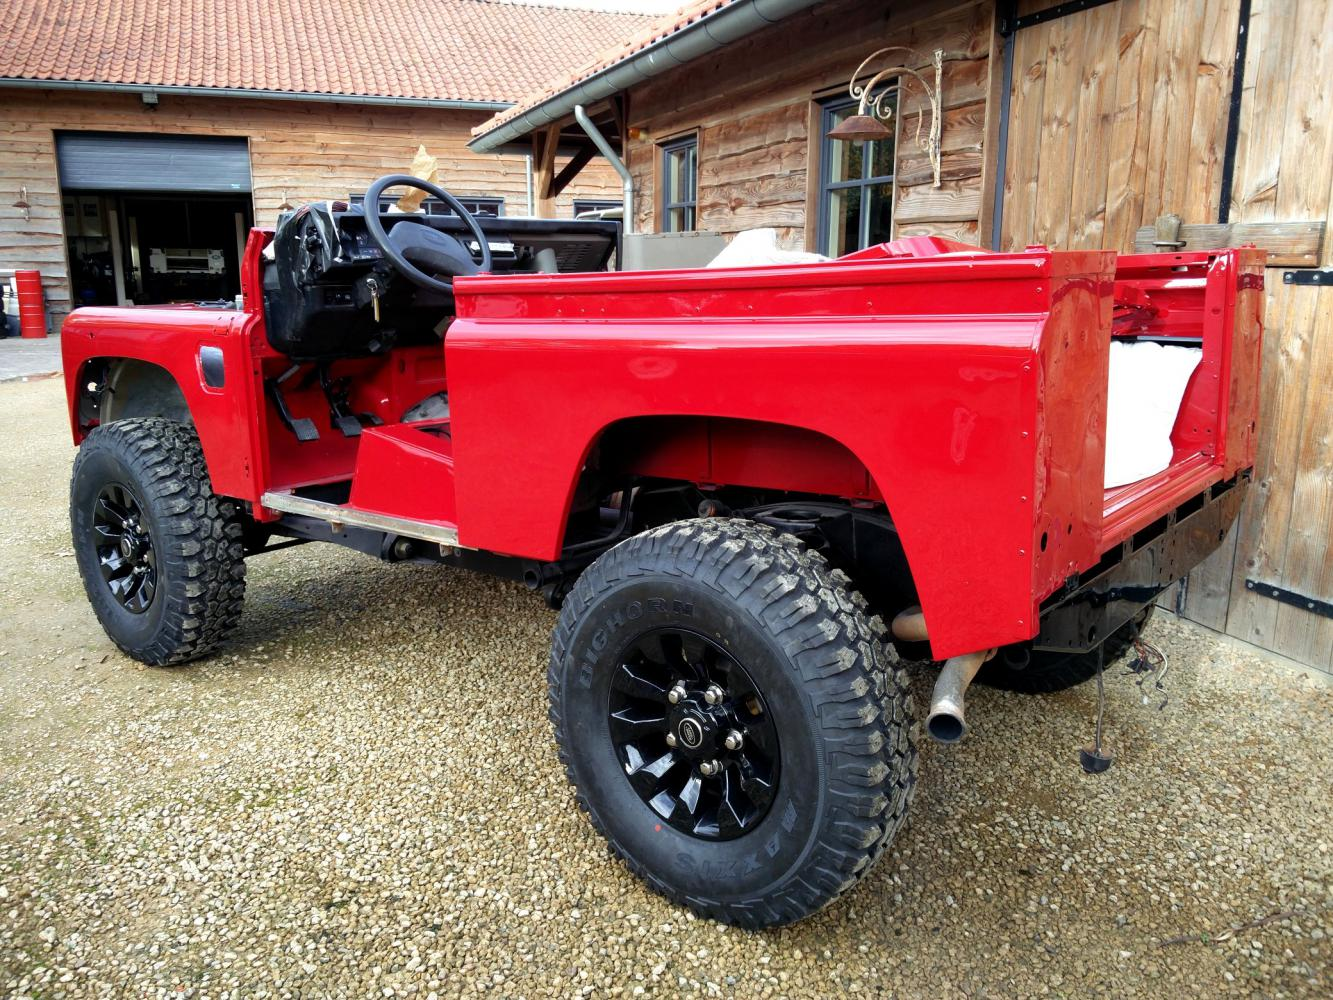 Click image for larger version  Name:1992 LR LHD Defender 90 Red 200 Tdi A day 1 left rear.jpg Views:83 Size:303.9 KB ID:309761